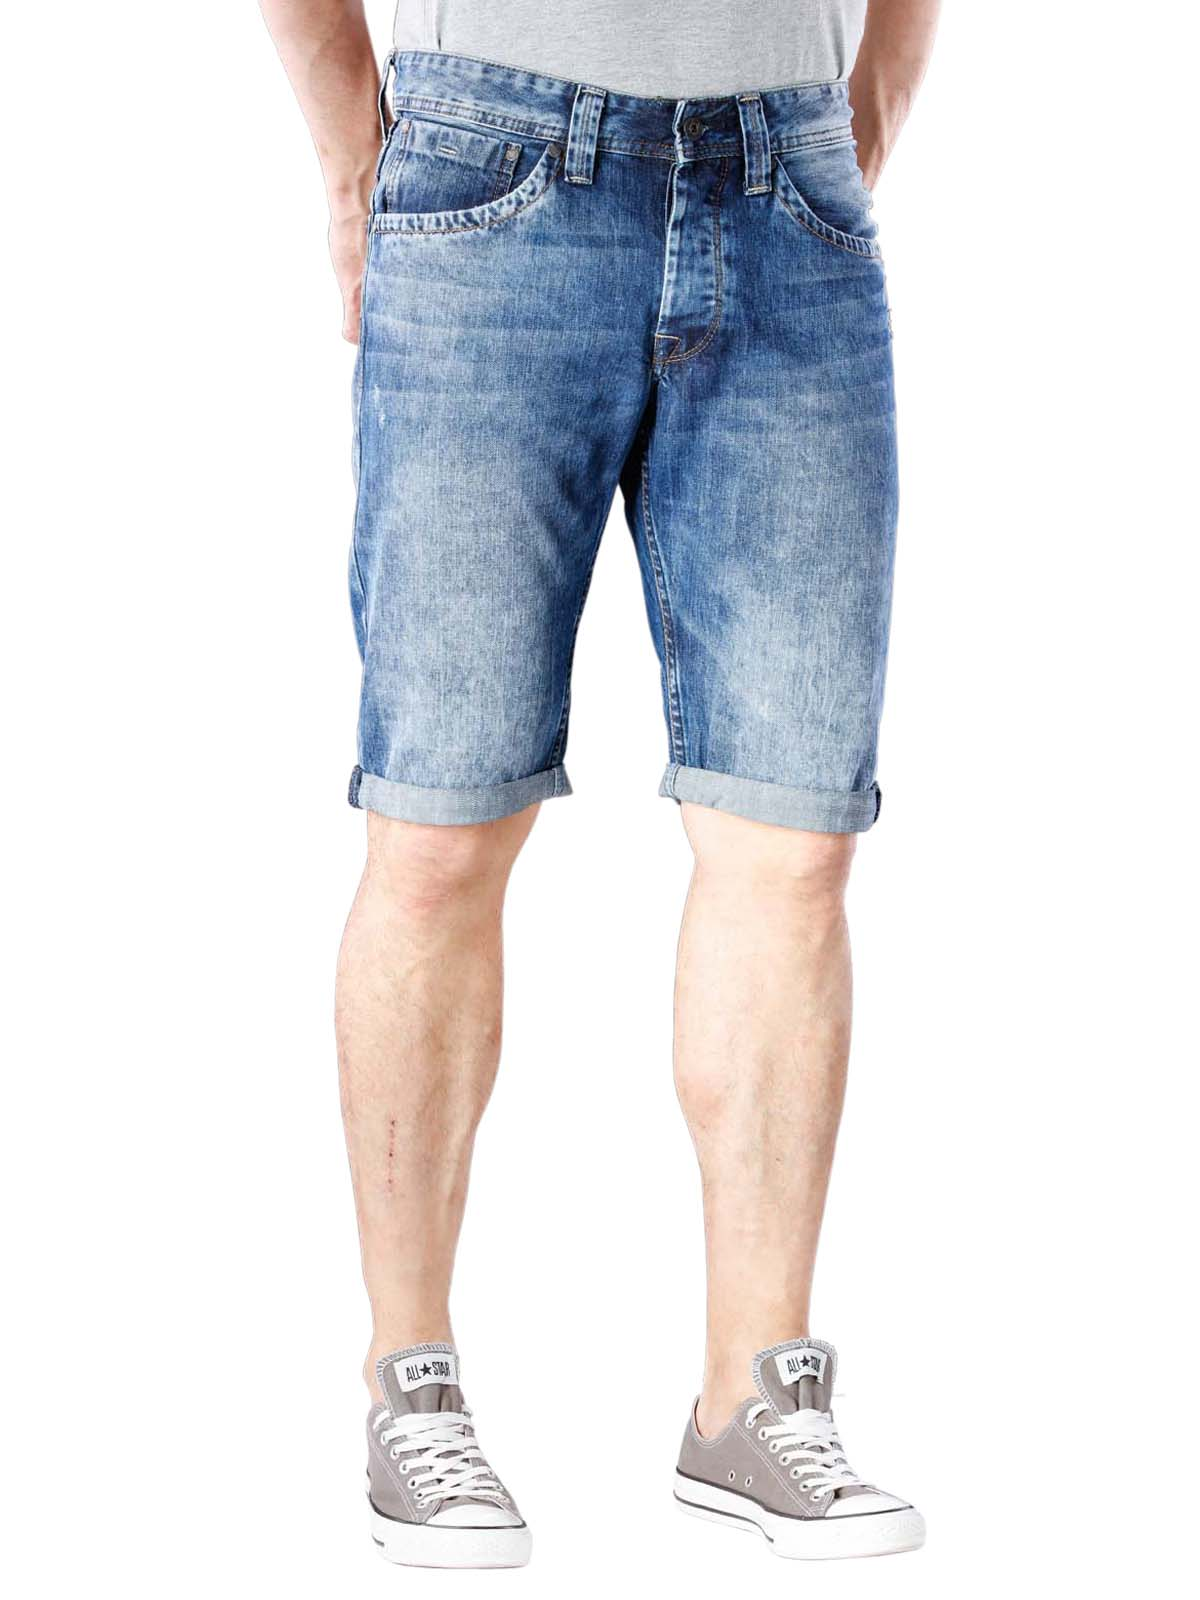 524b9a68e1fb Fast Delivery | Pepe Jeans Cash Short denim blue | Free ... - McJeans.ch